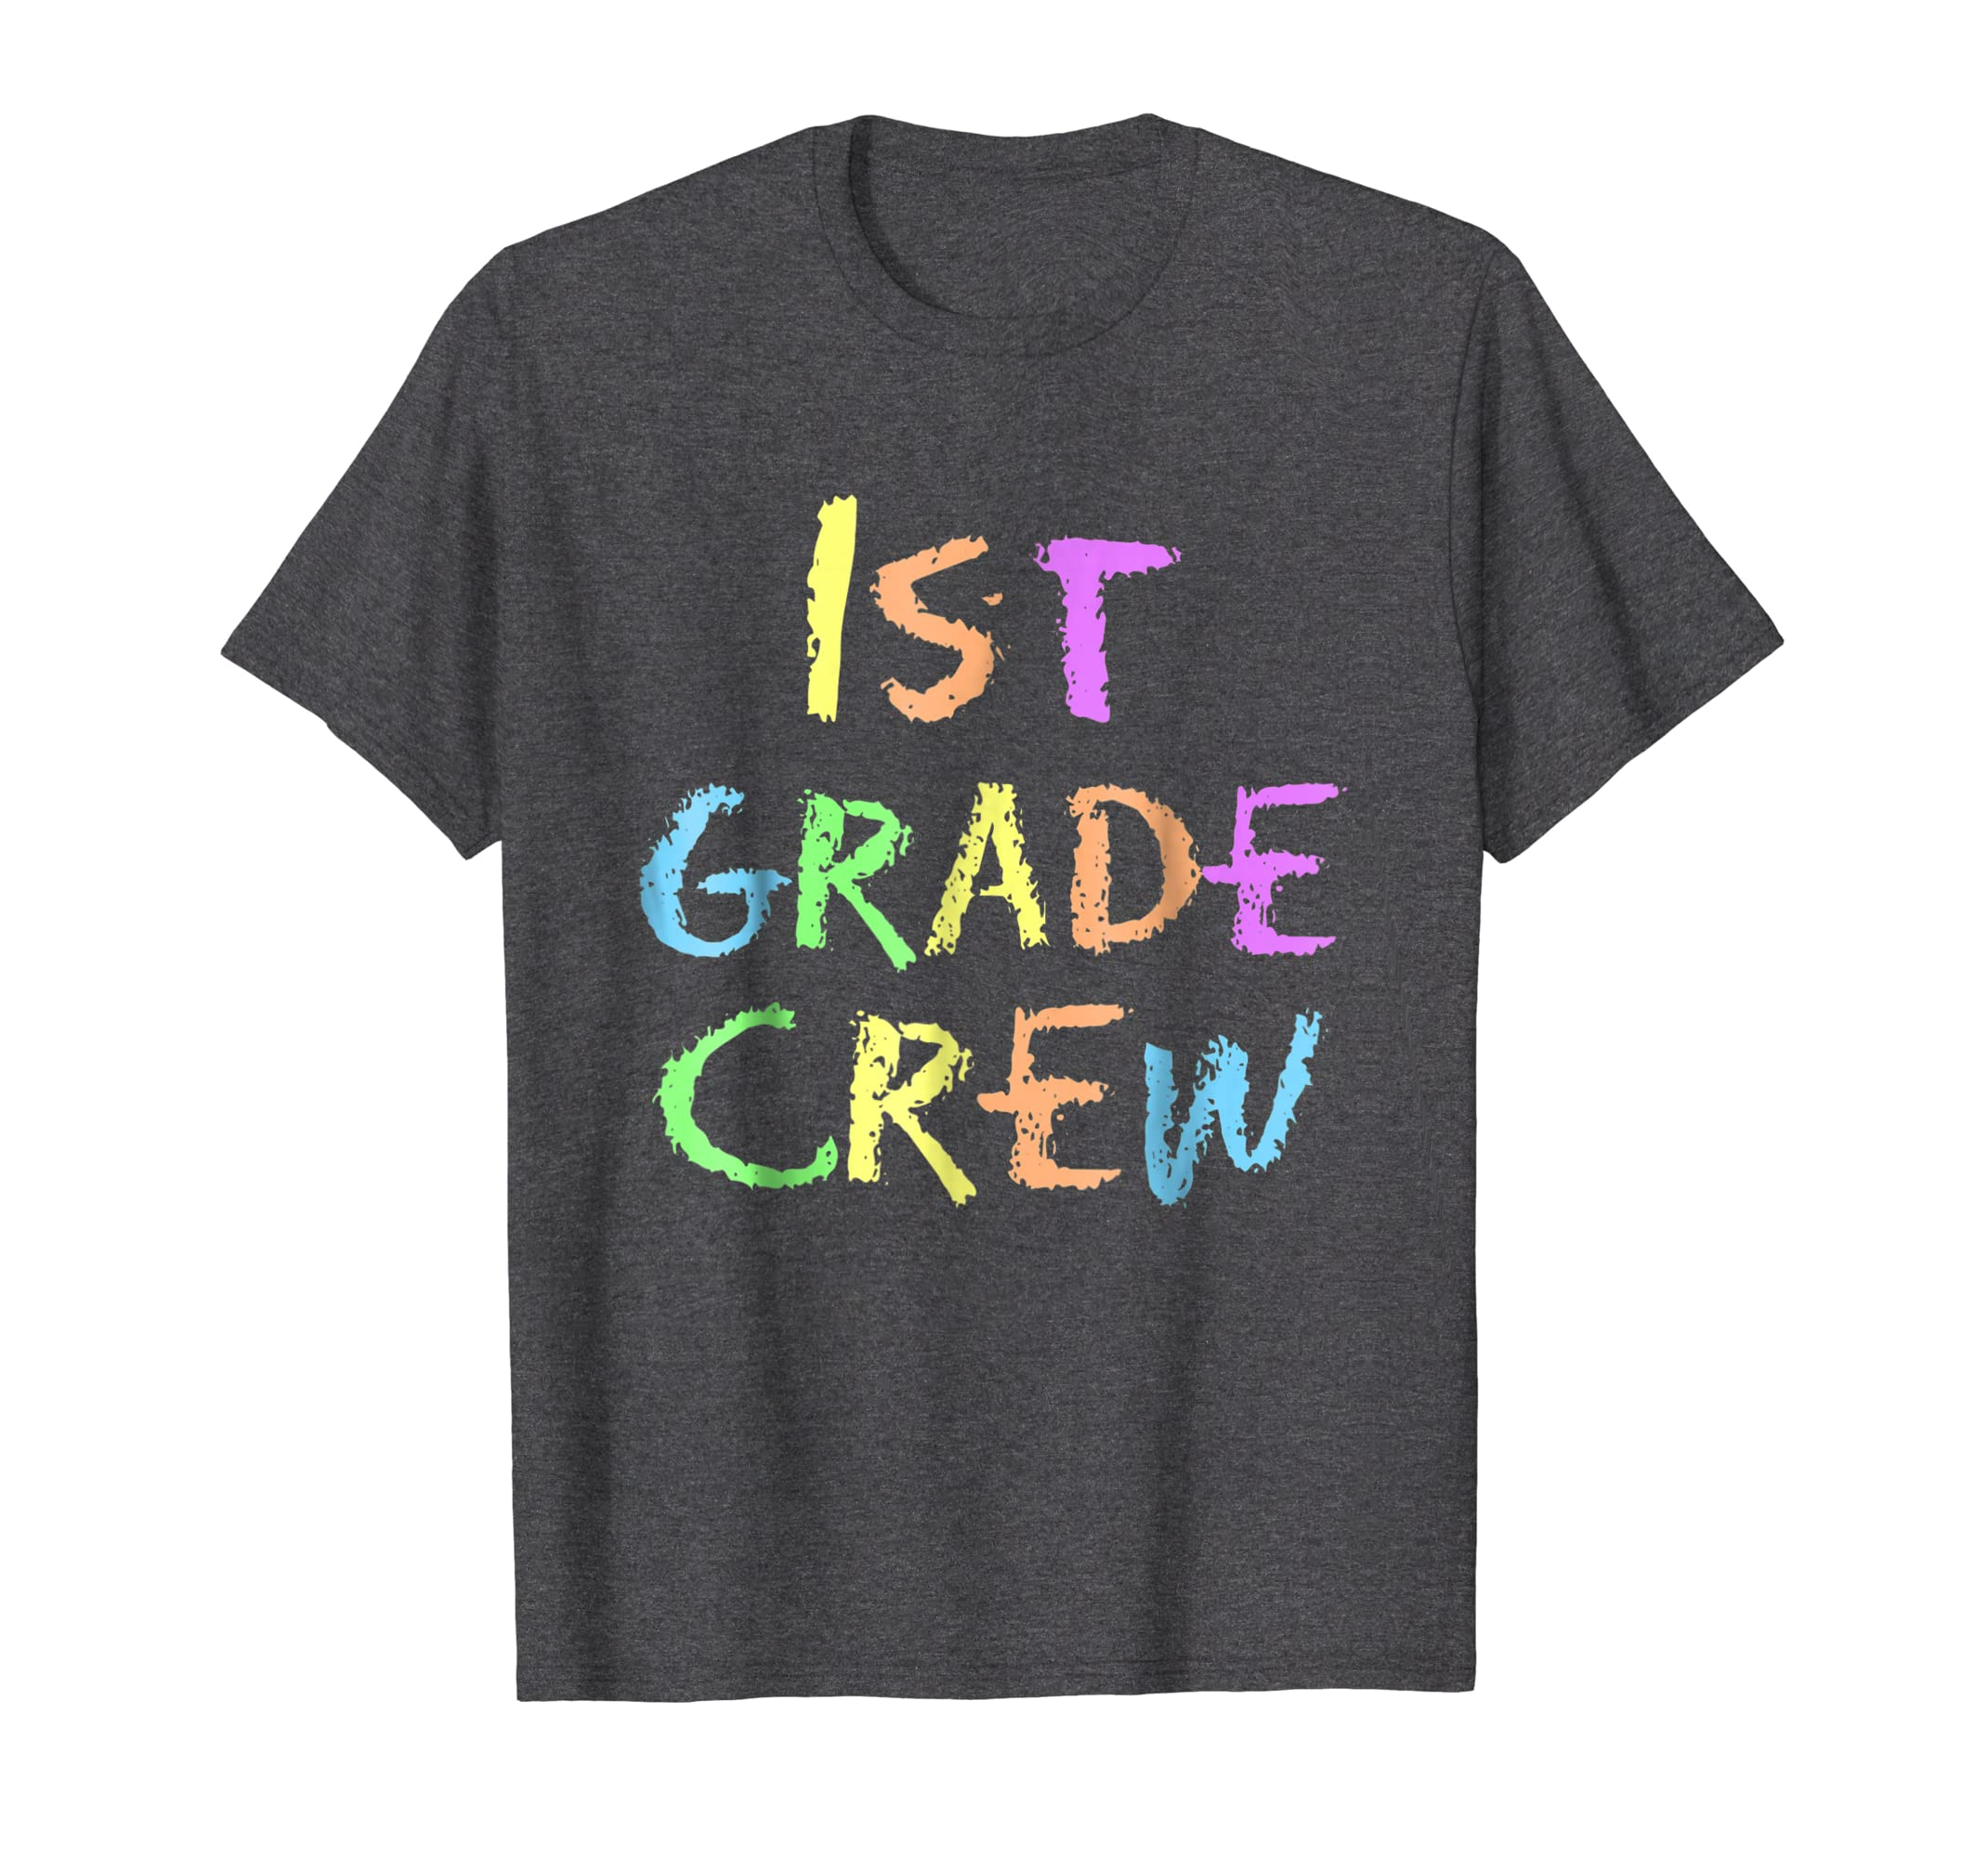 1st First Grade Crew Funny Back To School T Shirt